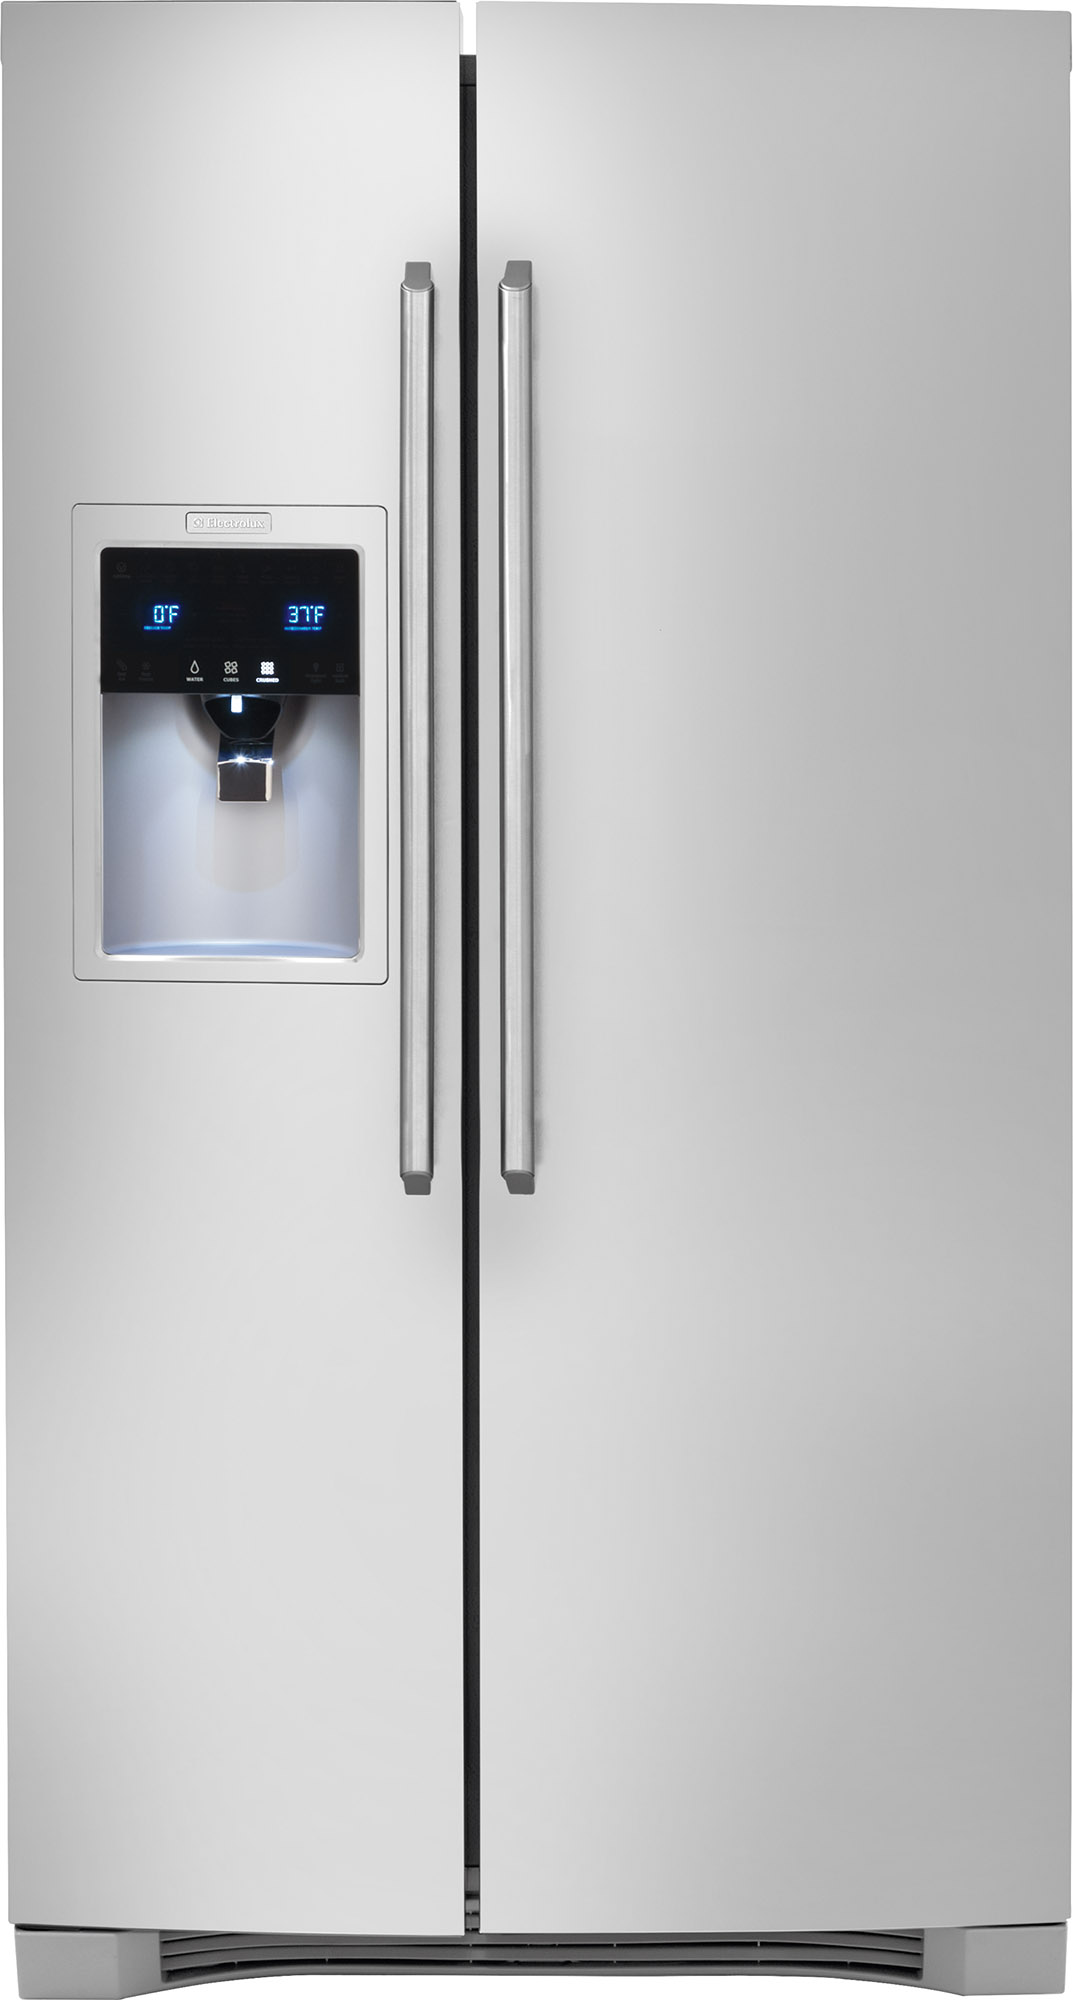 Electrolux 26.0 Cu. Ft. Side By Side Refrigerator Stainless  Steel EW26SS75QS. Electrolux Kitchen